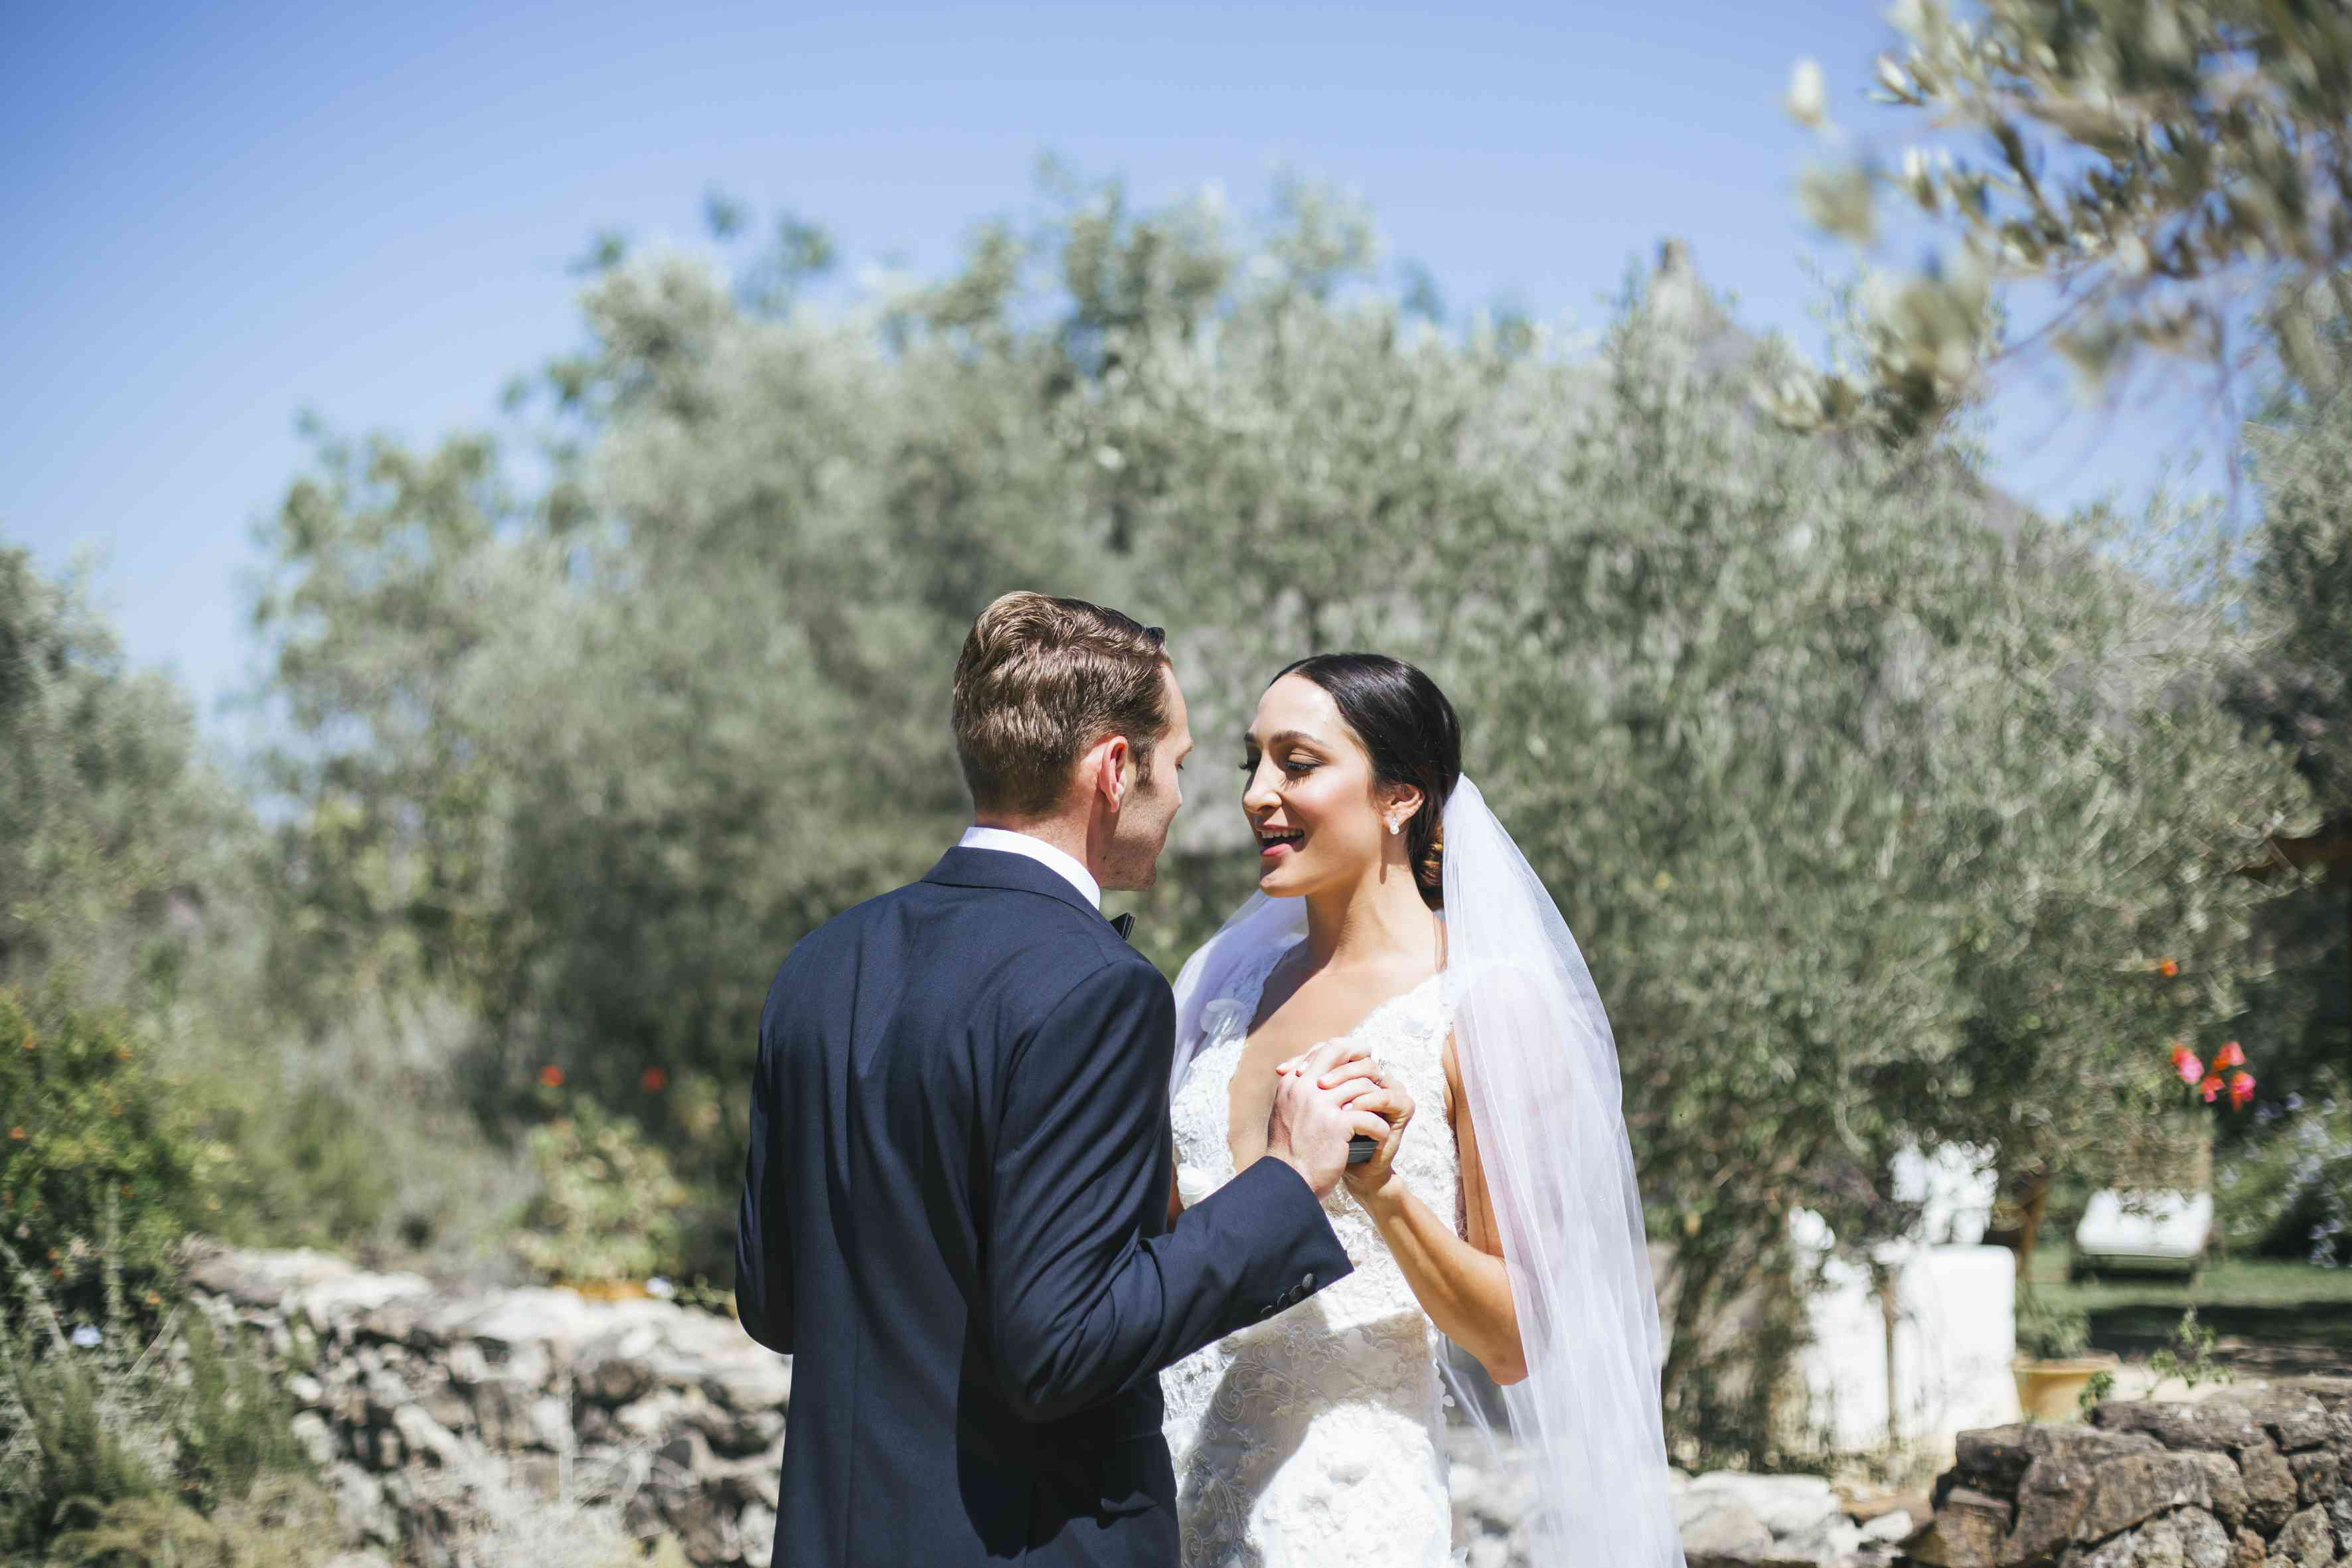 A Destination Wedding Weekend in the Andalusian Hills of Spain